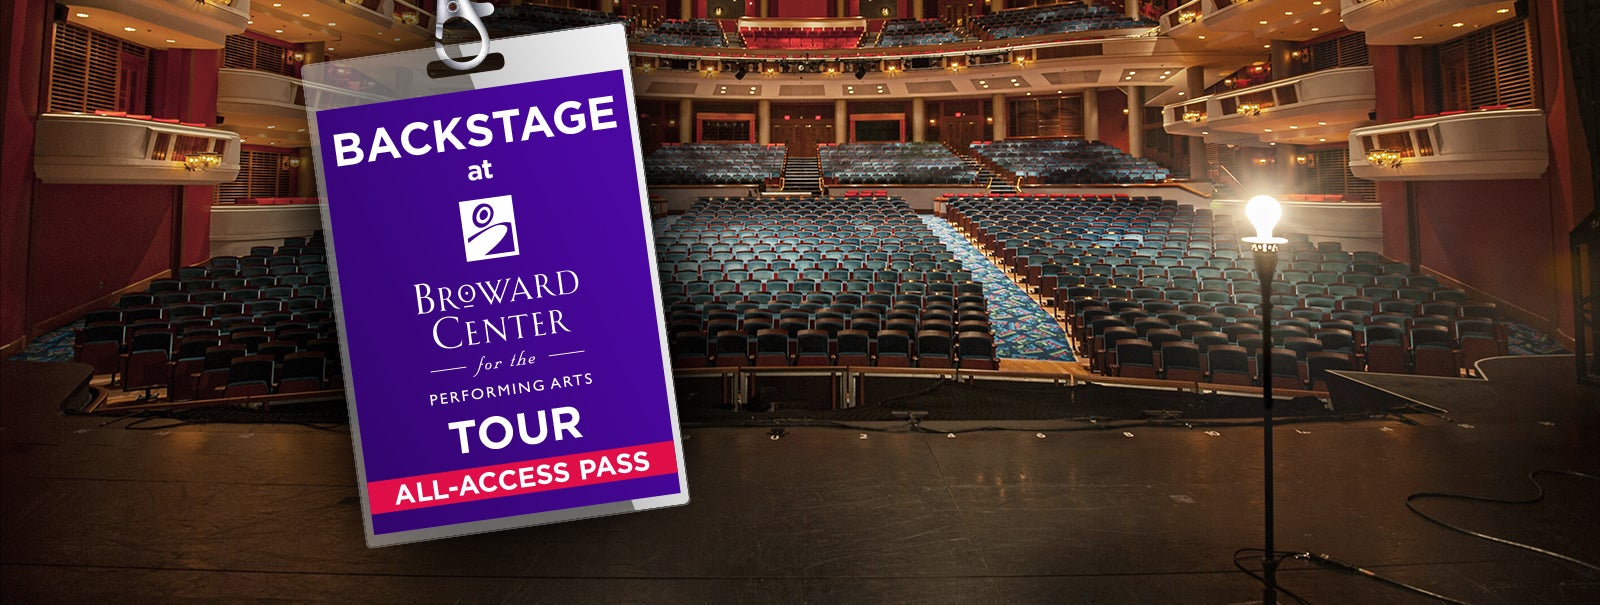 More Info - Backstage at Broward Center Tour